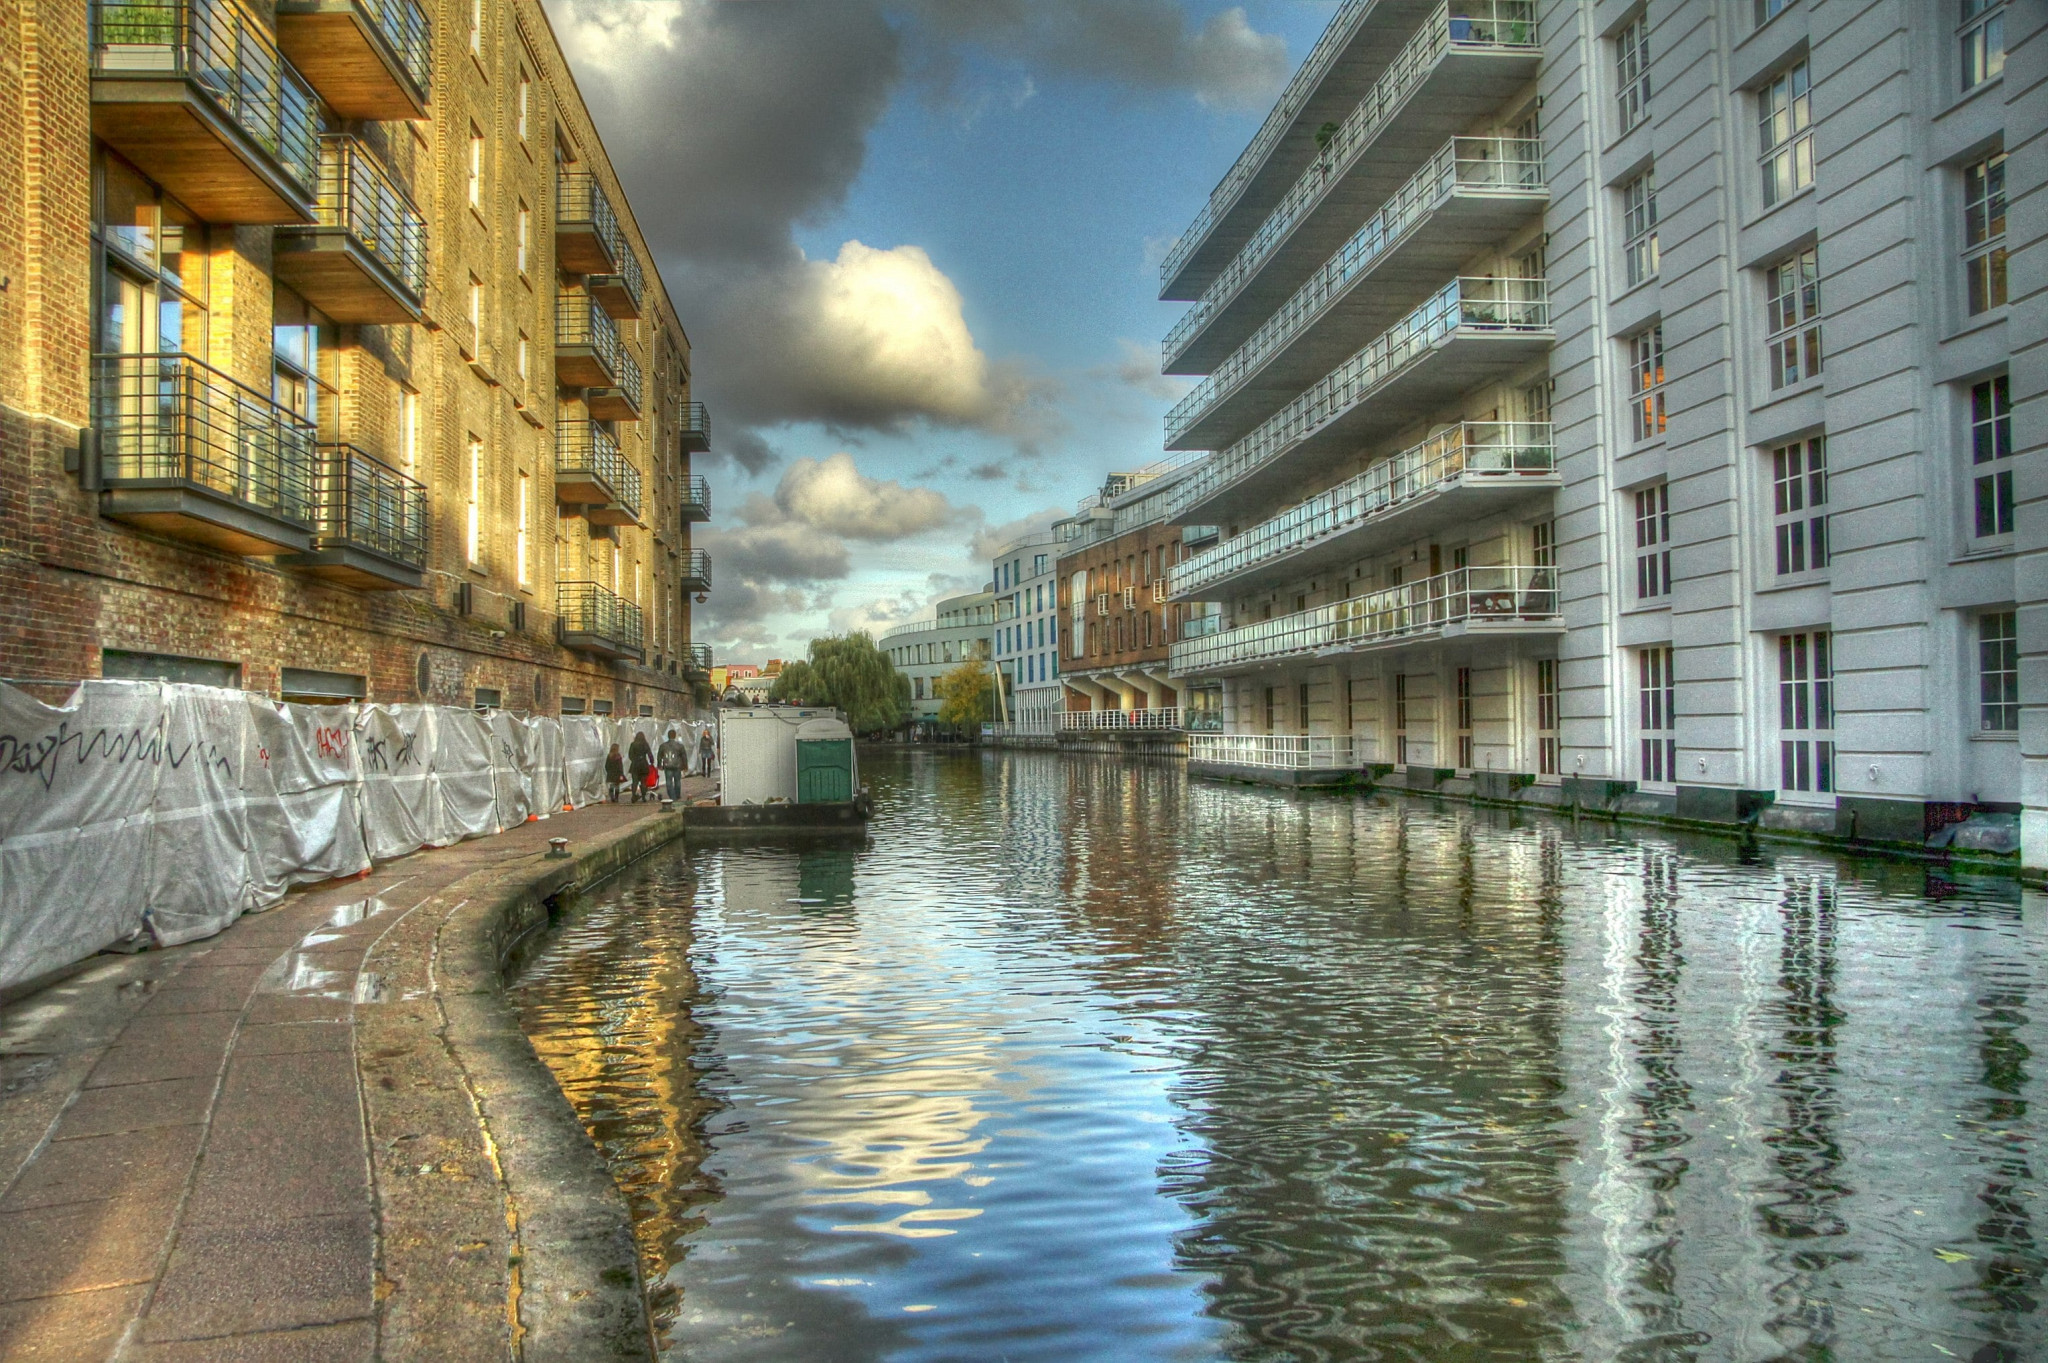 Regents Canal Towpath, Camden. HDR.